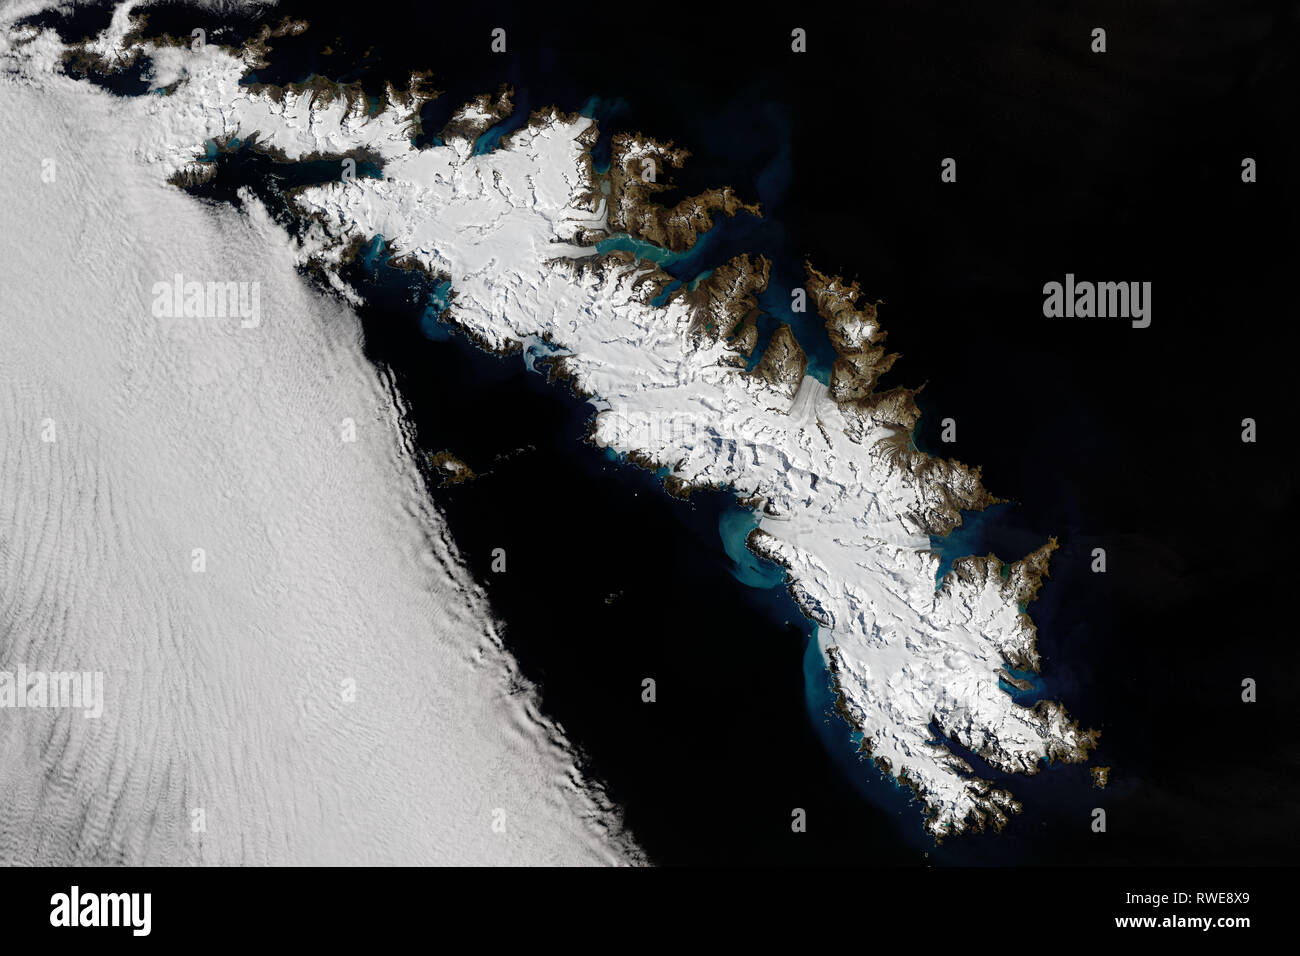 Aerial of South Georgia Island - Stock Image